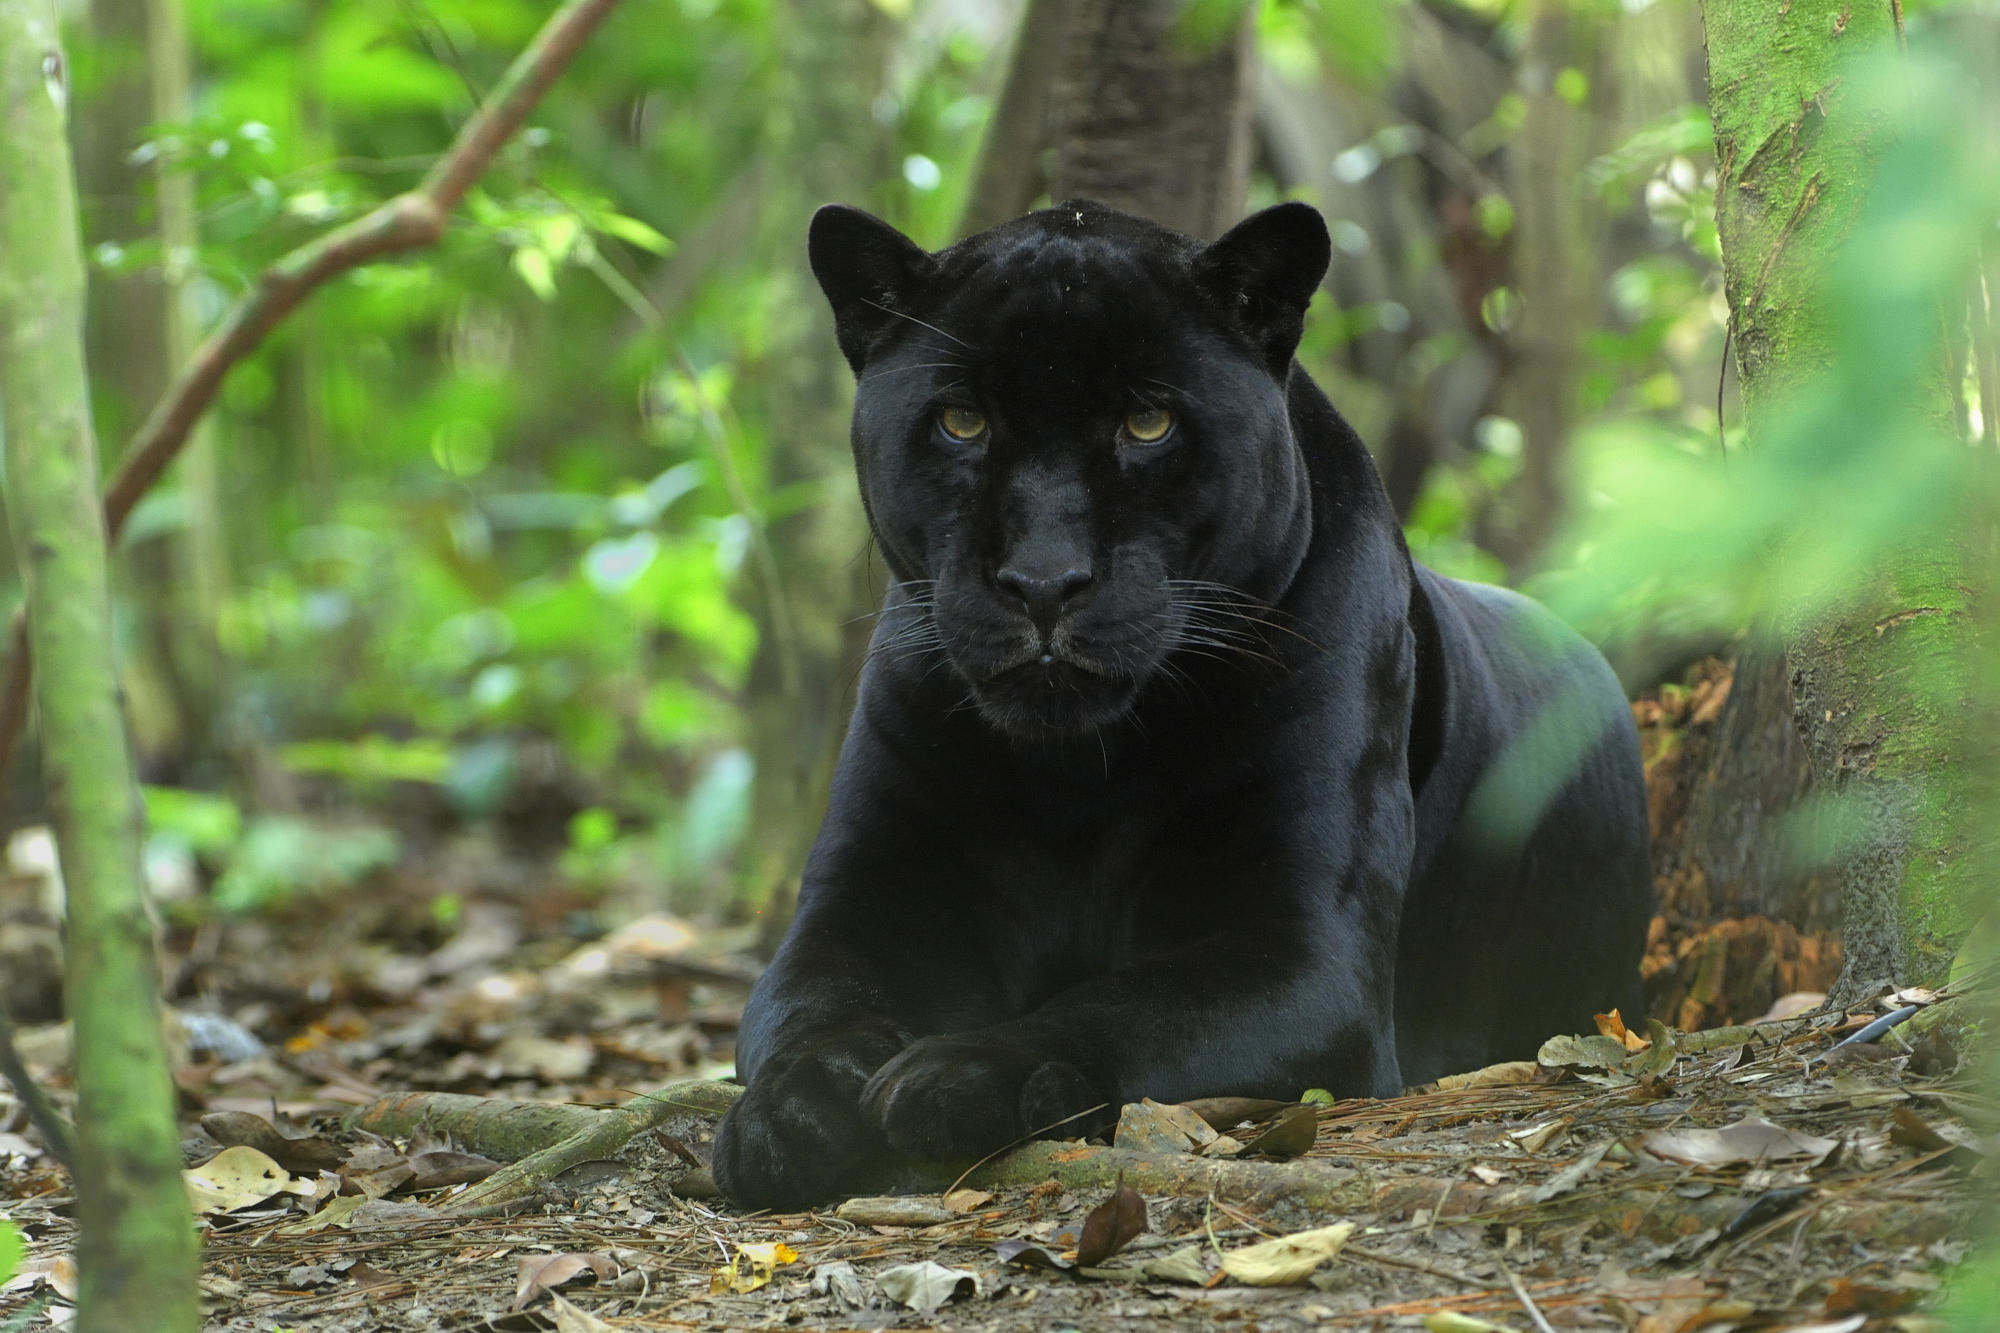 Black Leopard – Android – Black Leopard Most popular Black Leopard Wallpaper  A high quality Most Beautiful Black Leopard Wallpaper APP. Most Black  Leopard.